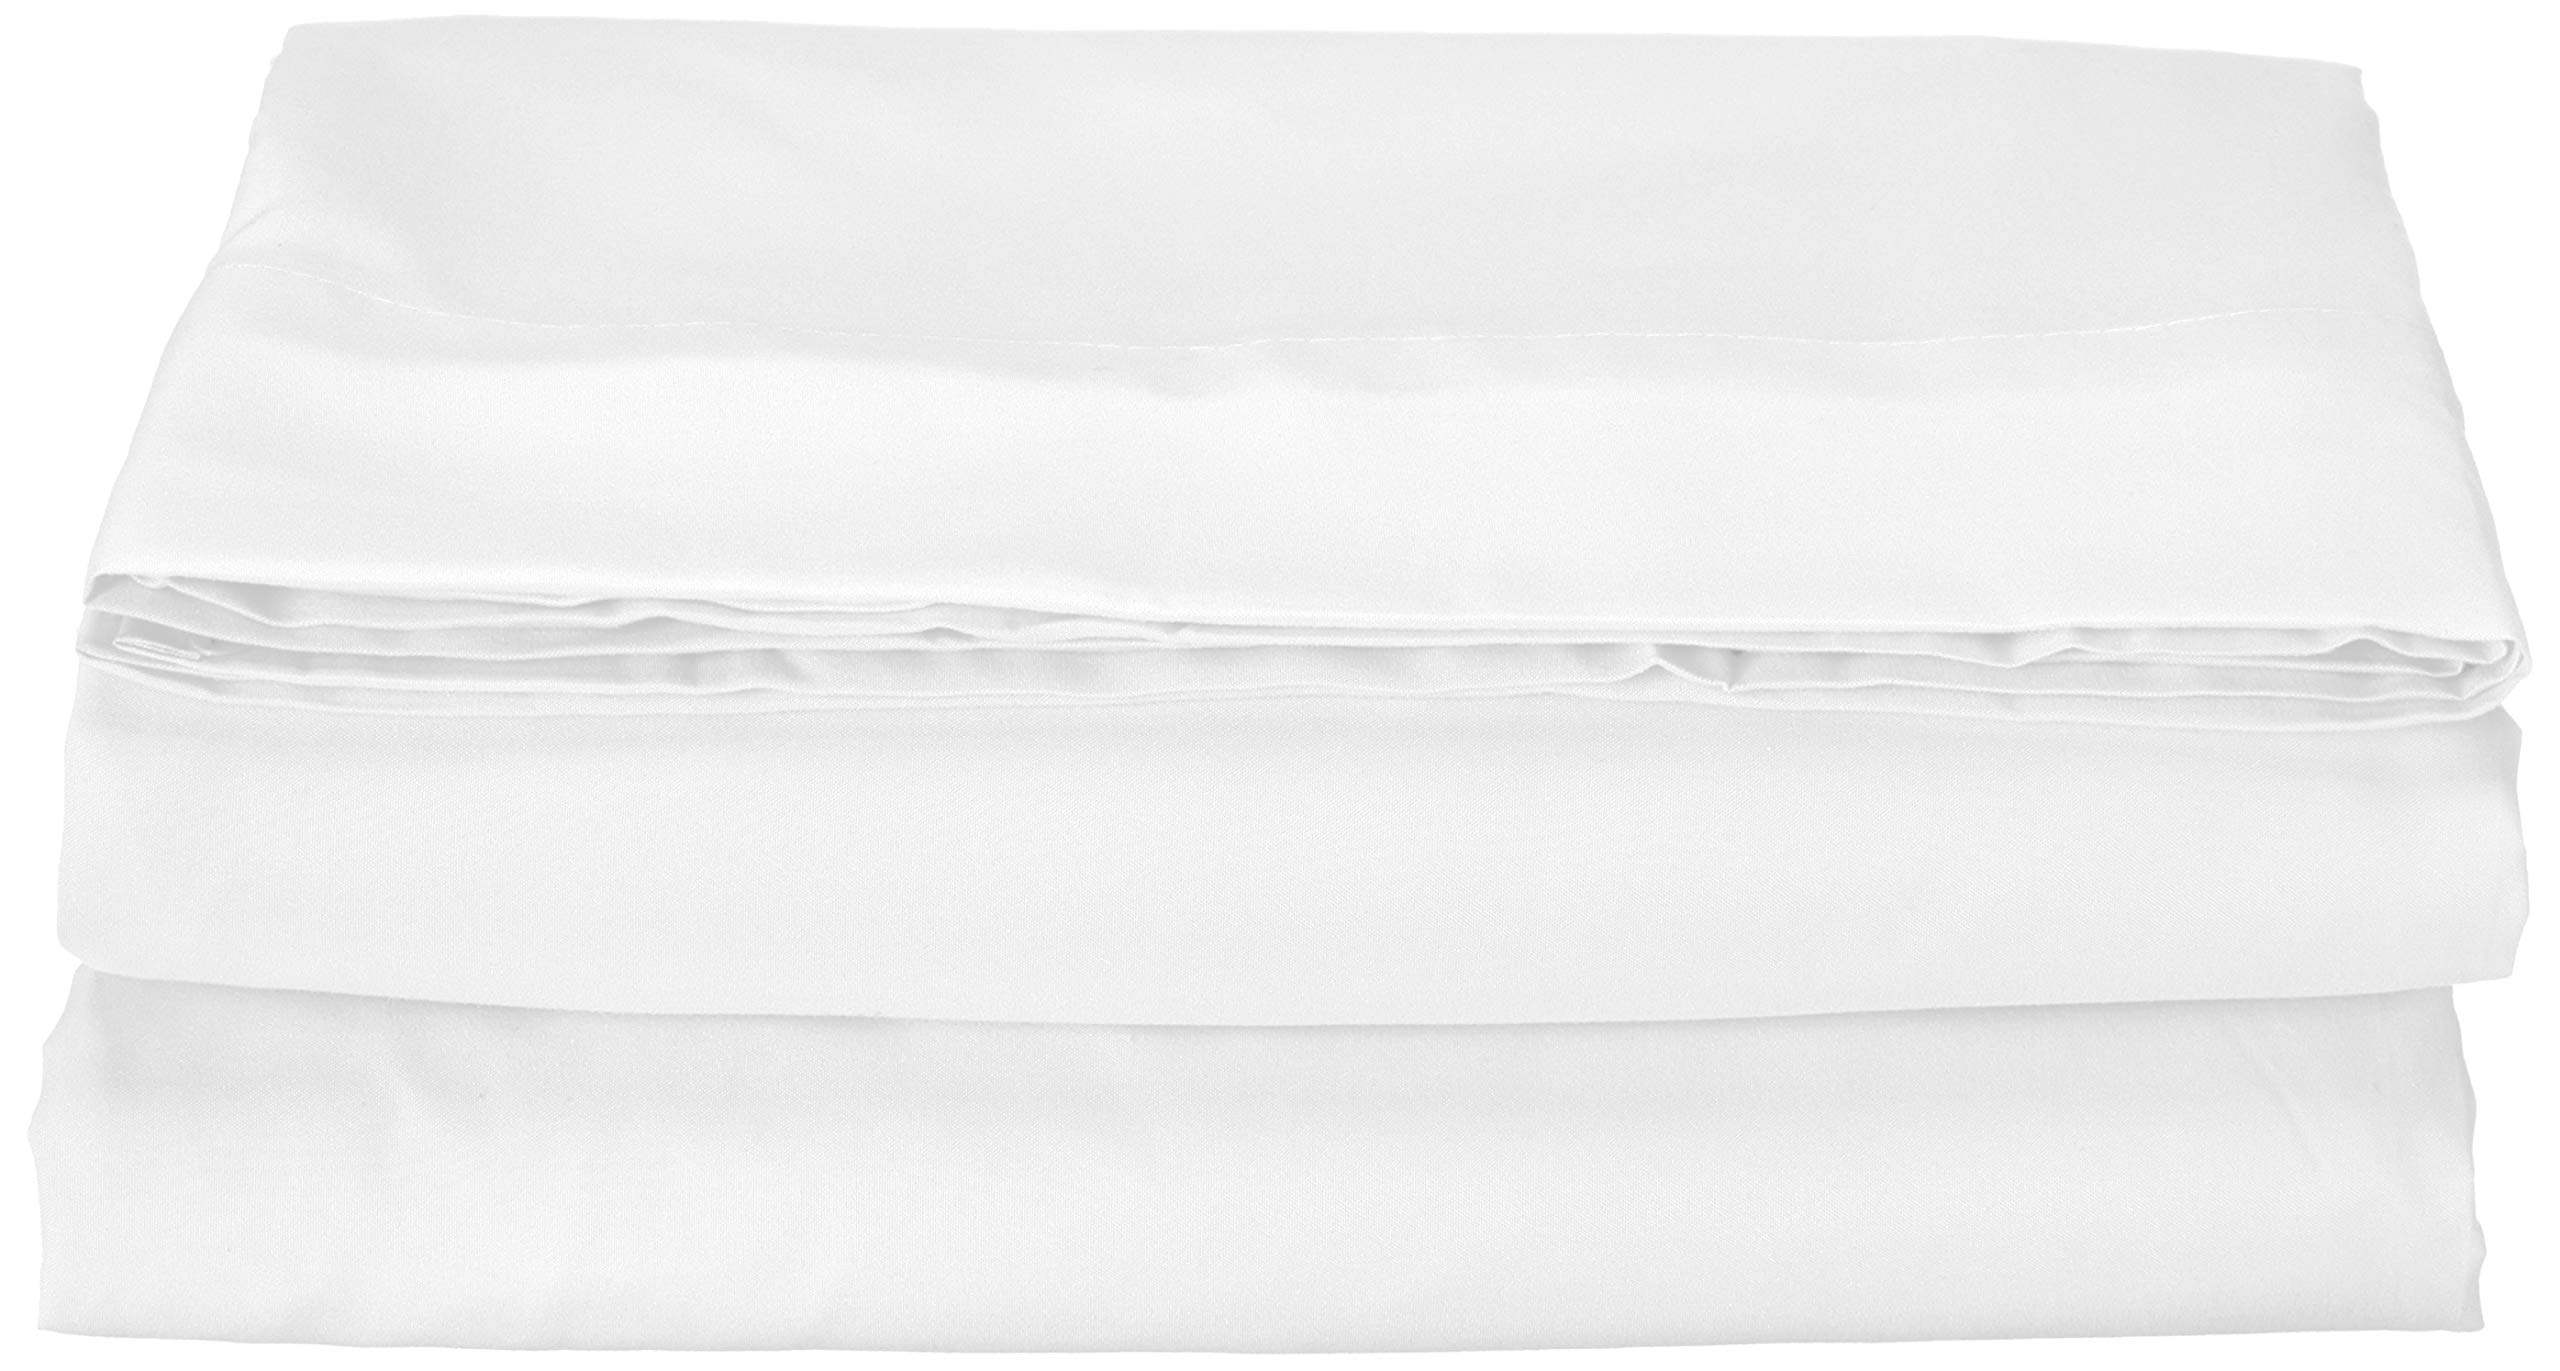 Elegance Linen Hospitality Special Treatment Construction Luxurious Ultra Soft White Single Flat Sheet, Queen